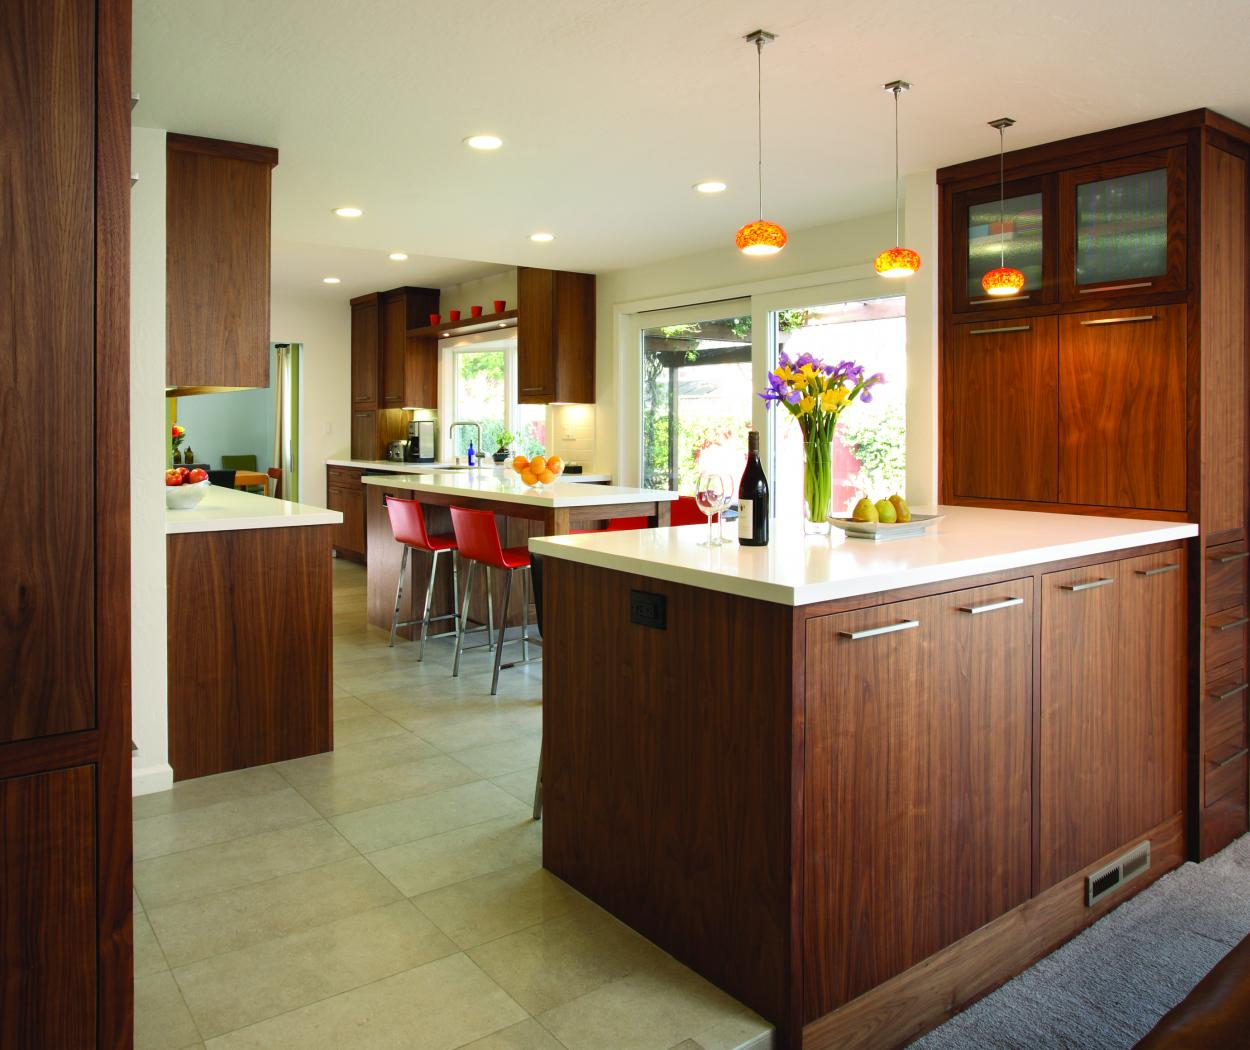 Contemporary Kitchen Built in Walnut with a Beautiful Natural Finish, White Countertops and Chrome Hardware